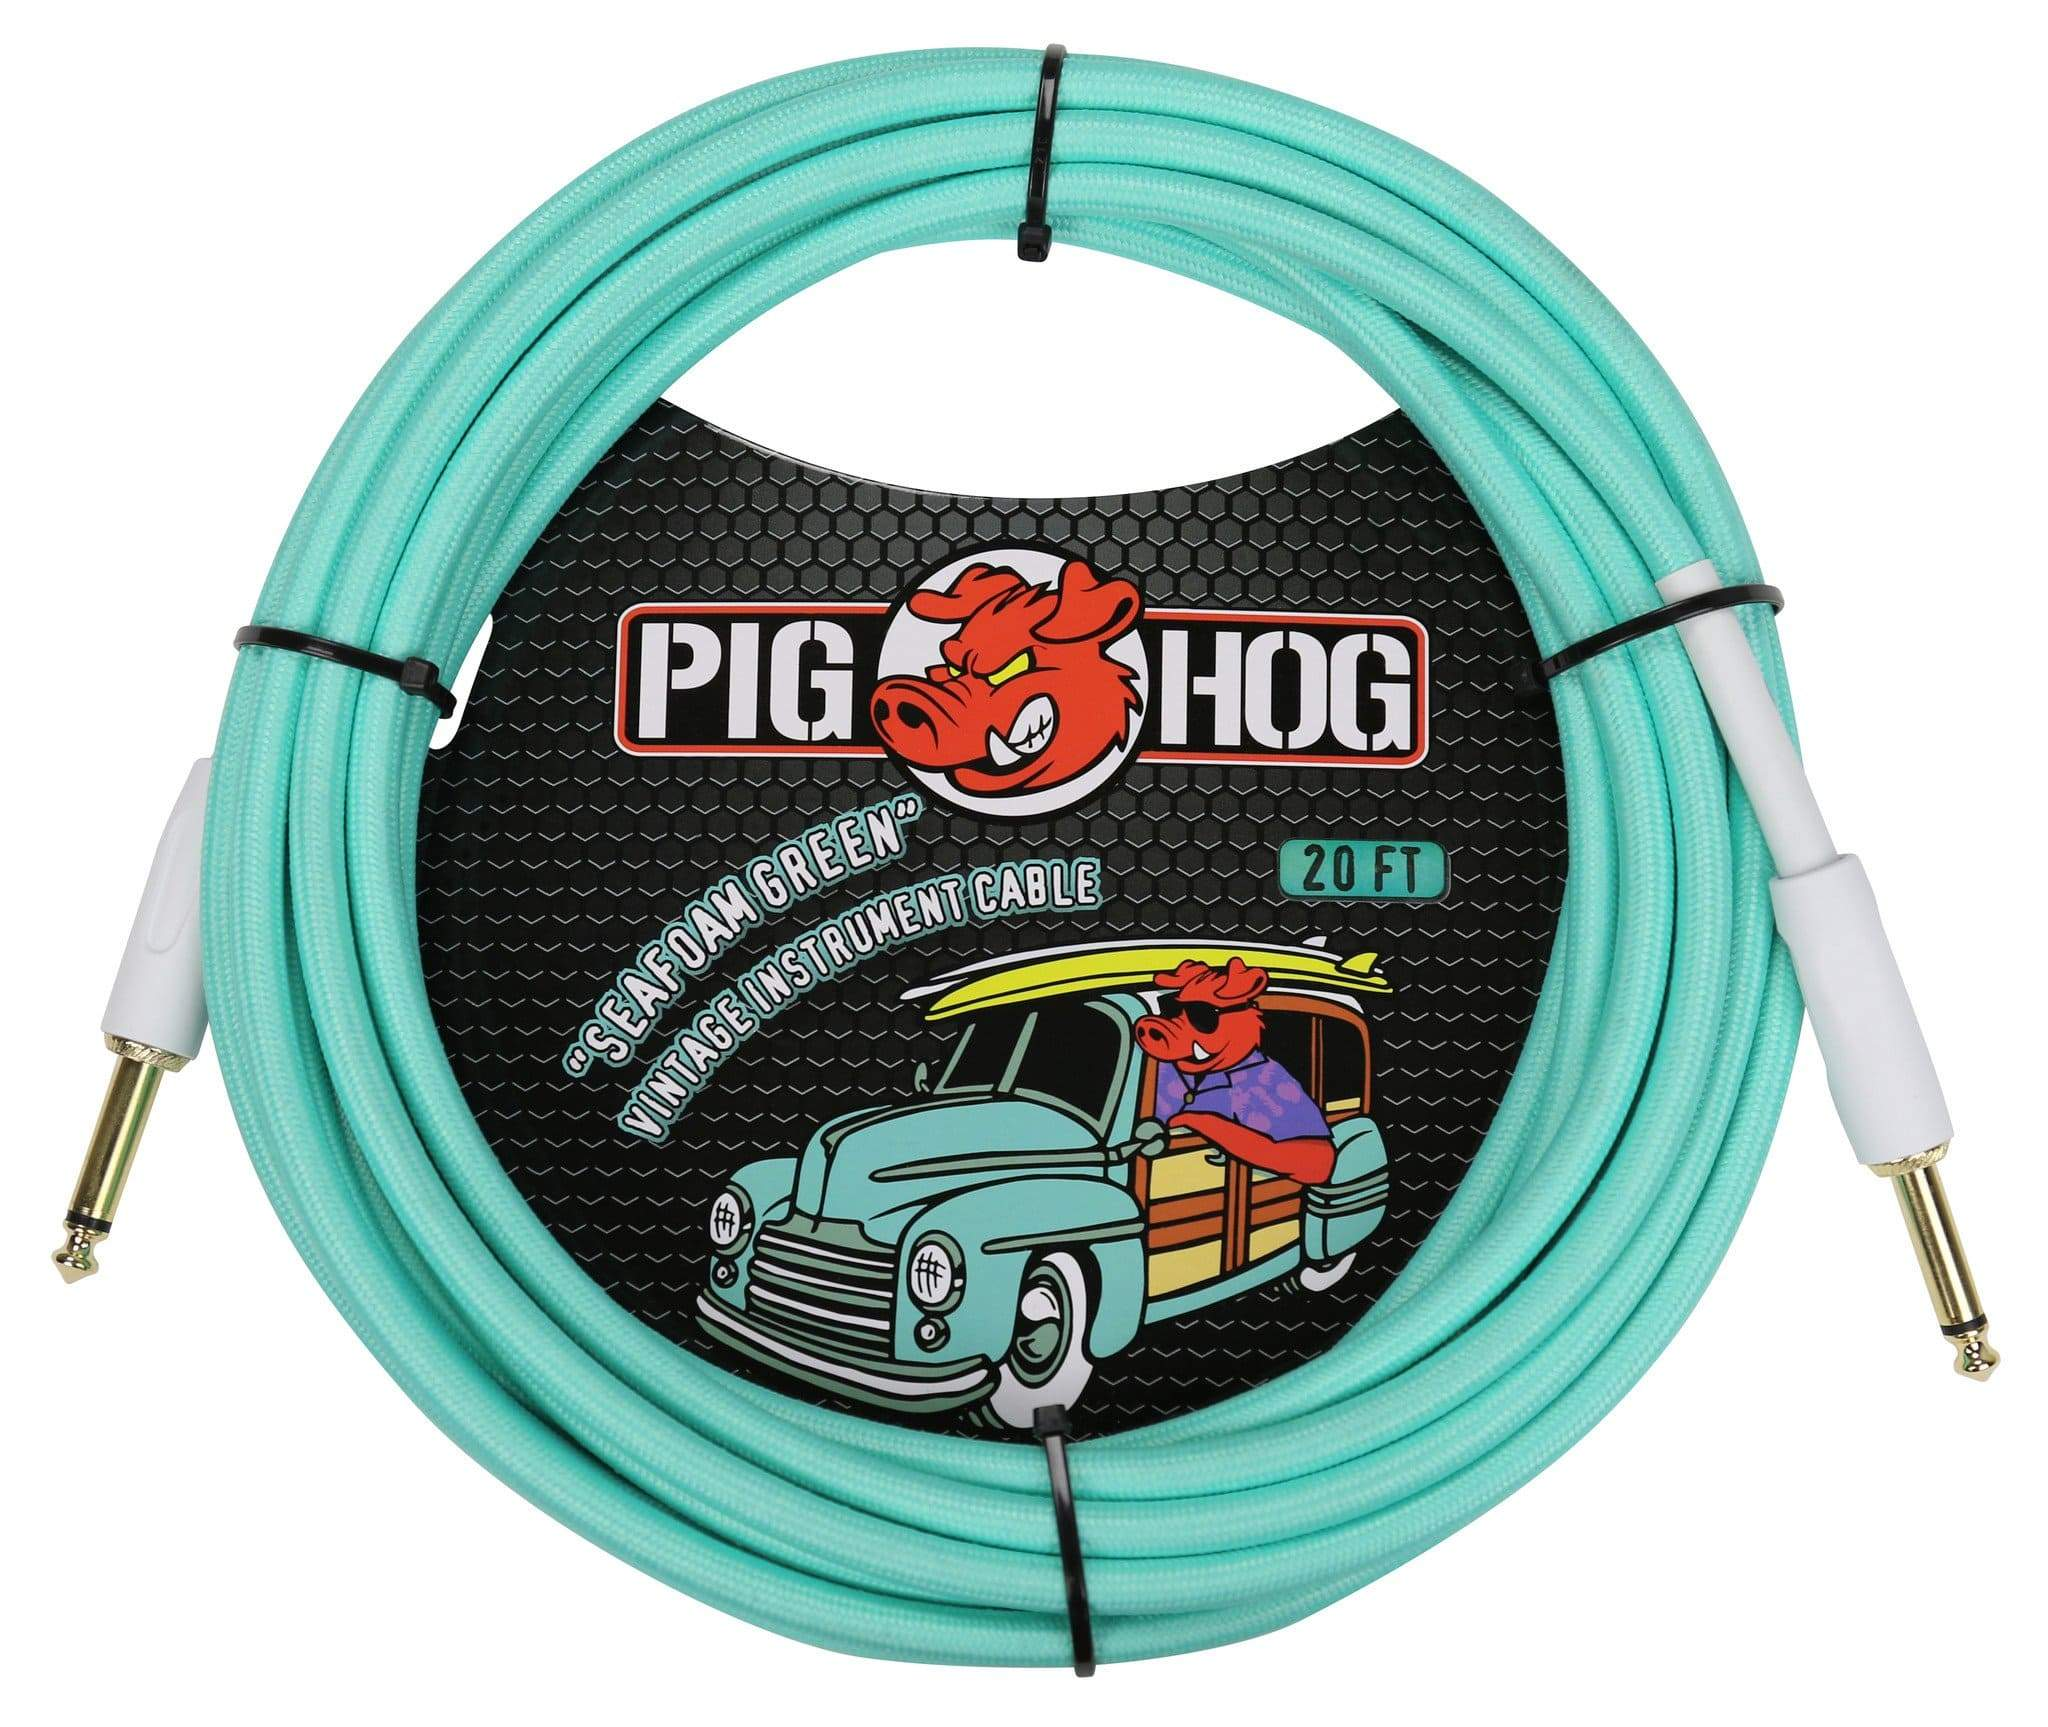 PIG HOG GUITAR INSTRUMENT CABLES PIG HOG SEAFOAM GREEN 20' FOOT GUITAR INSTRUMENT BASS PATCH CABLE 1/4 MONO CORD